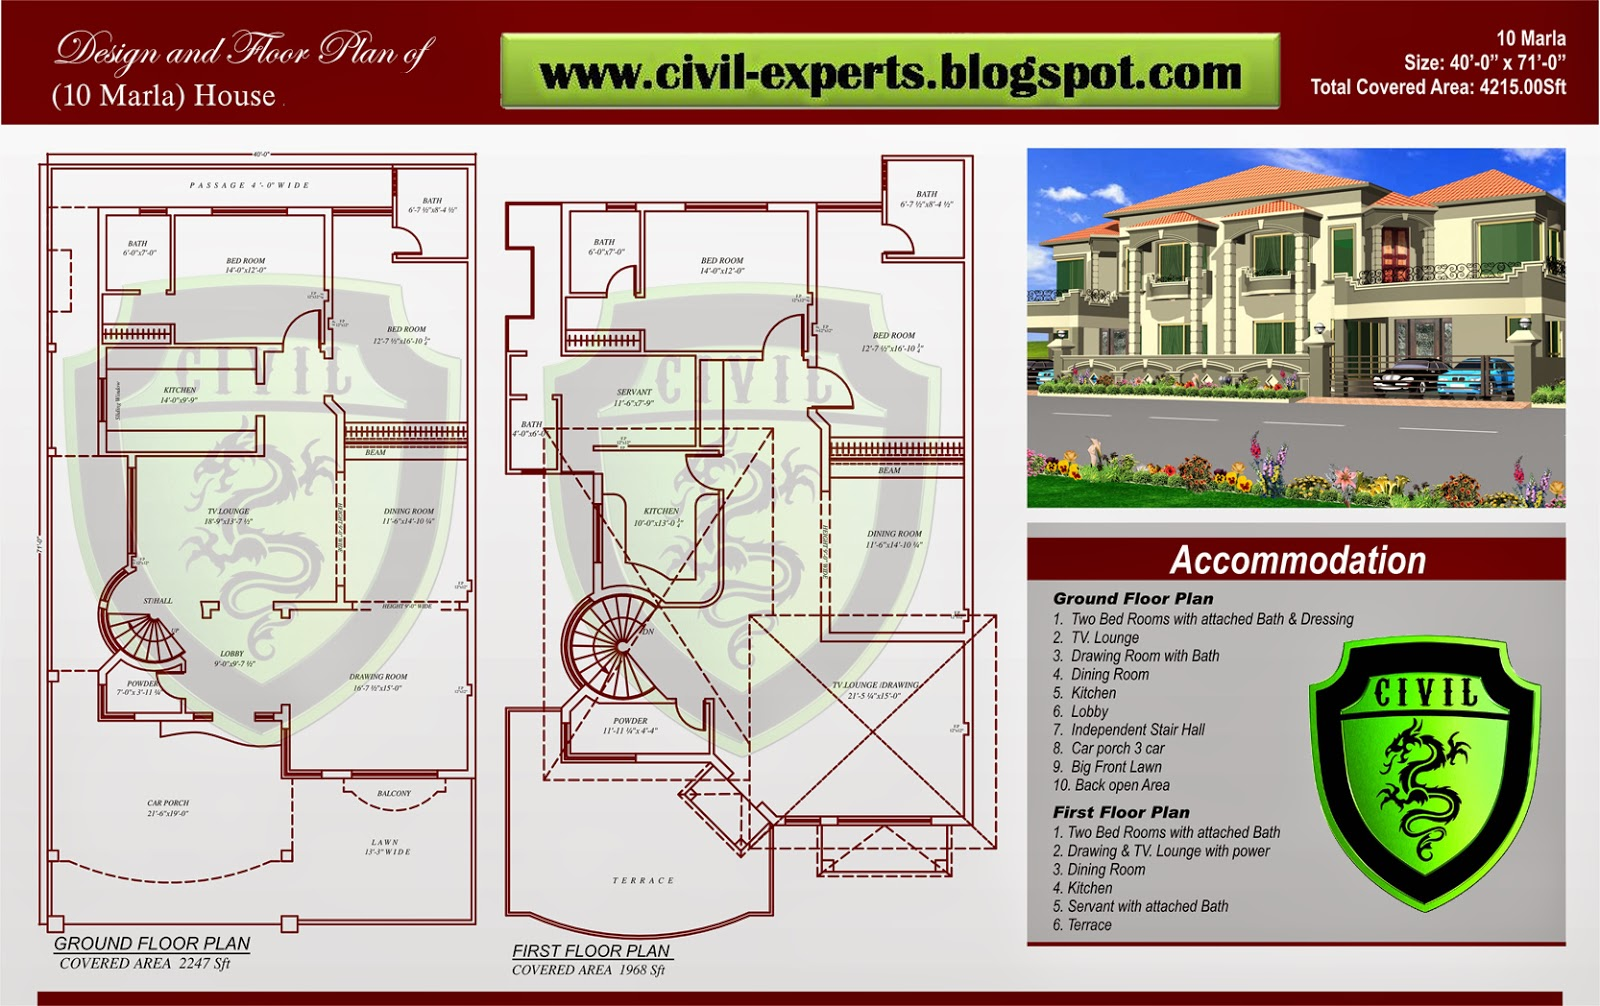 Civil experts 10 marla house plans for House design and layout